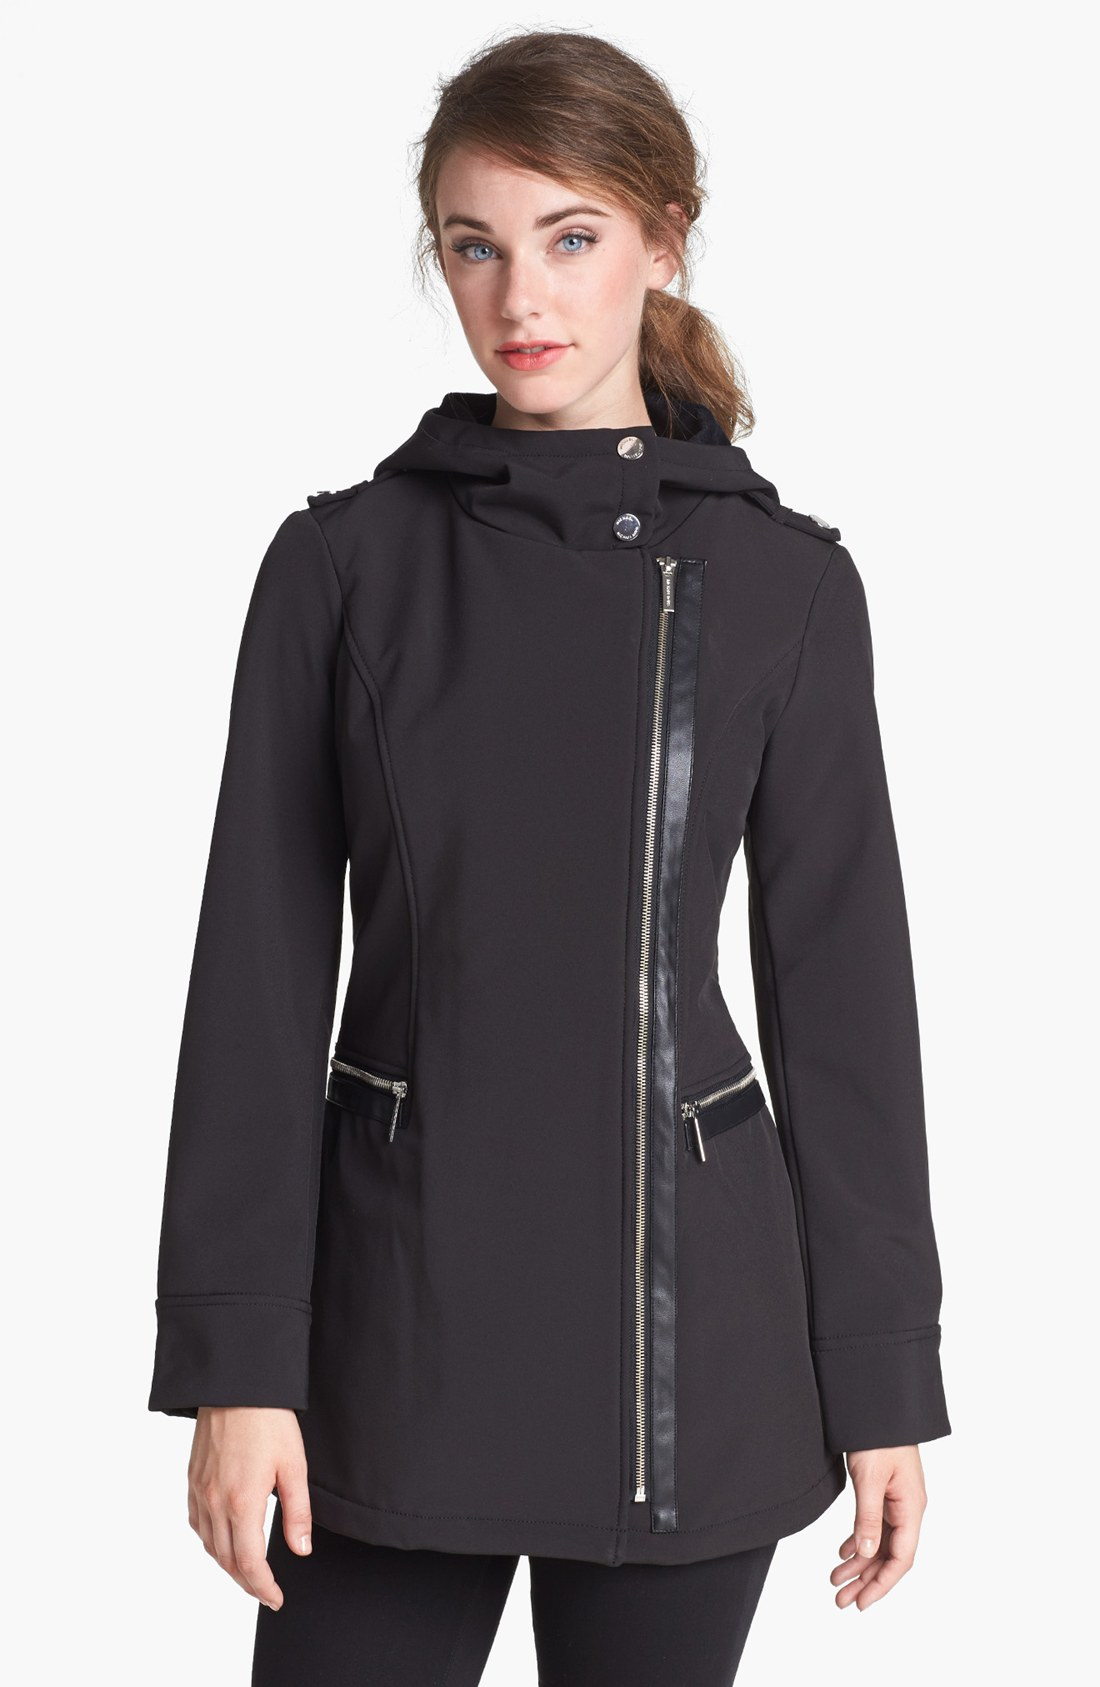 michael michael kors faux leather trim soft shell jacket in black lyst. Black Bedroom Furniture Sets. Home Design Ideas